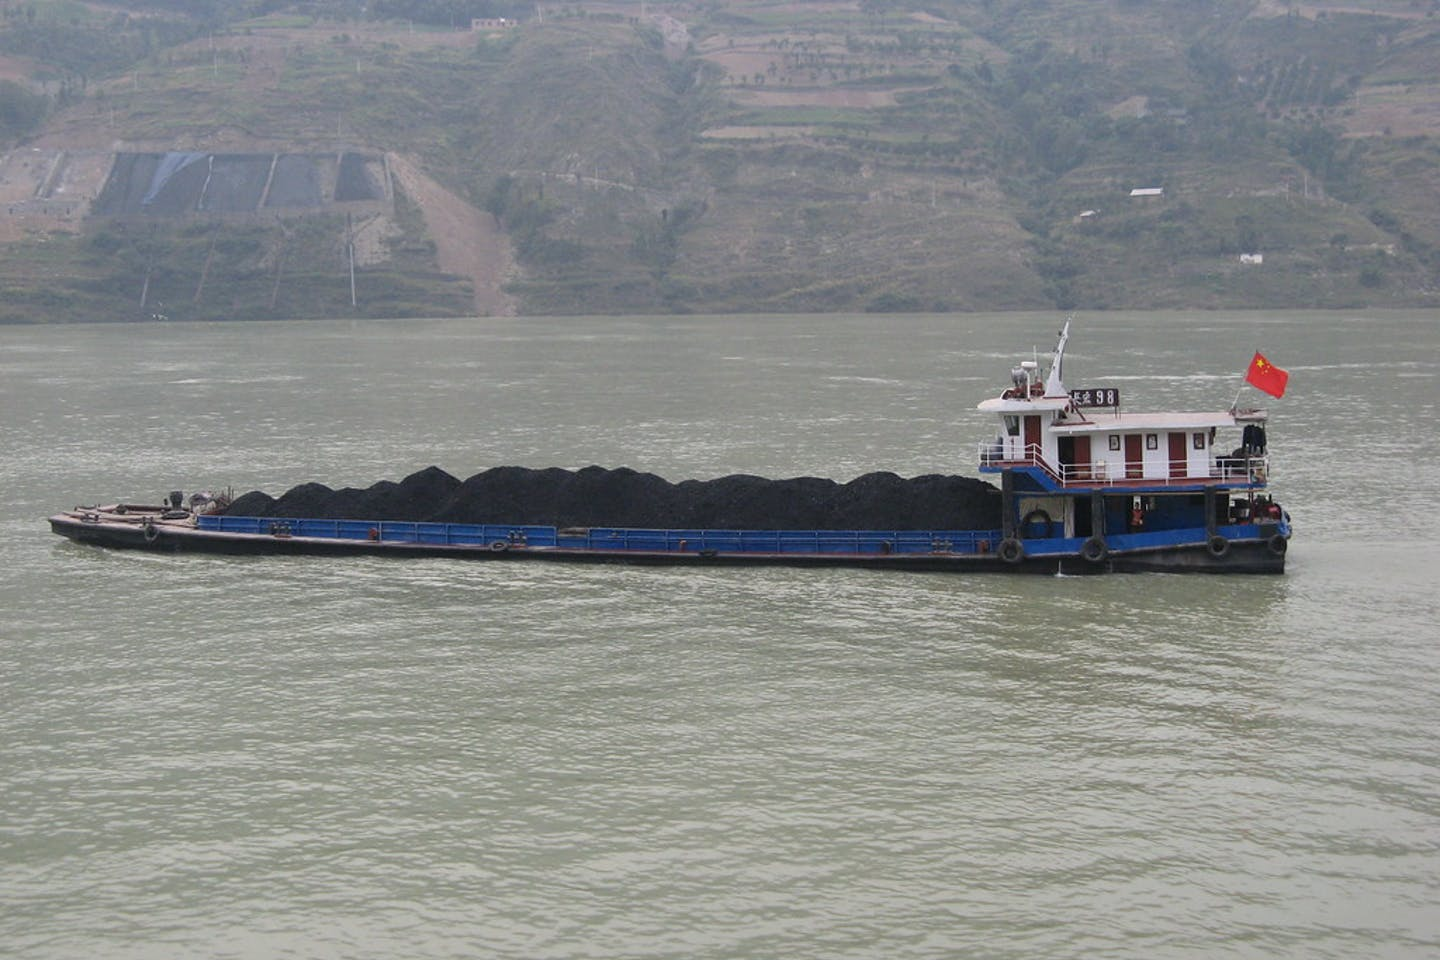 A coal barge along a river in China.